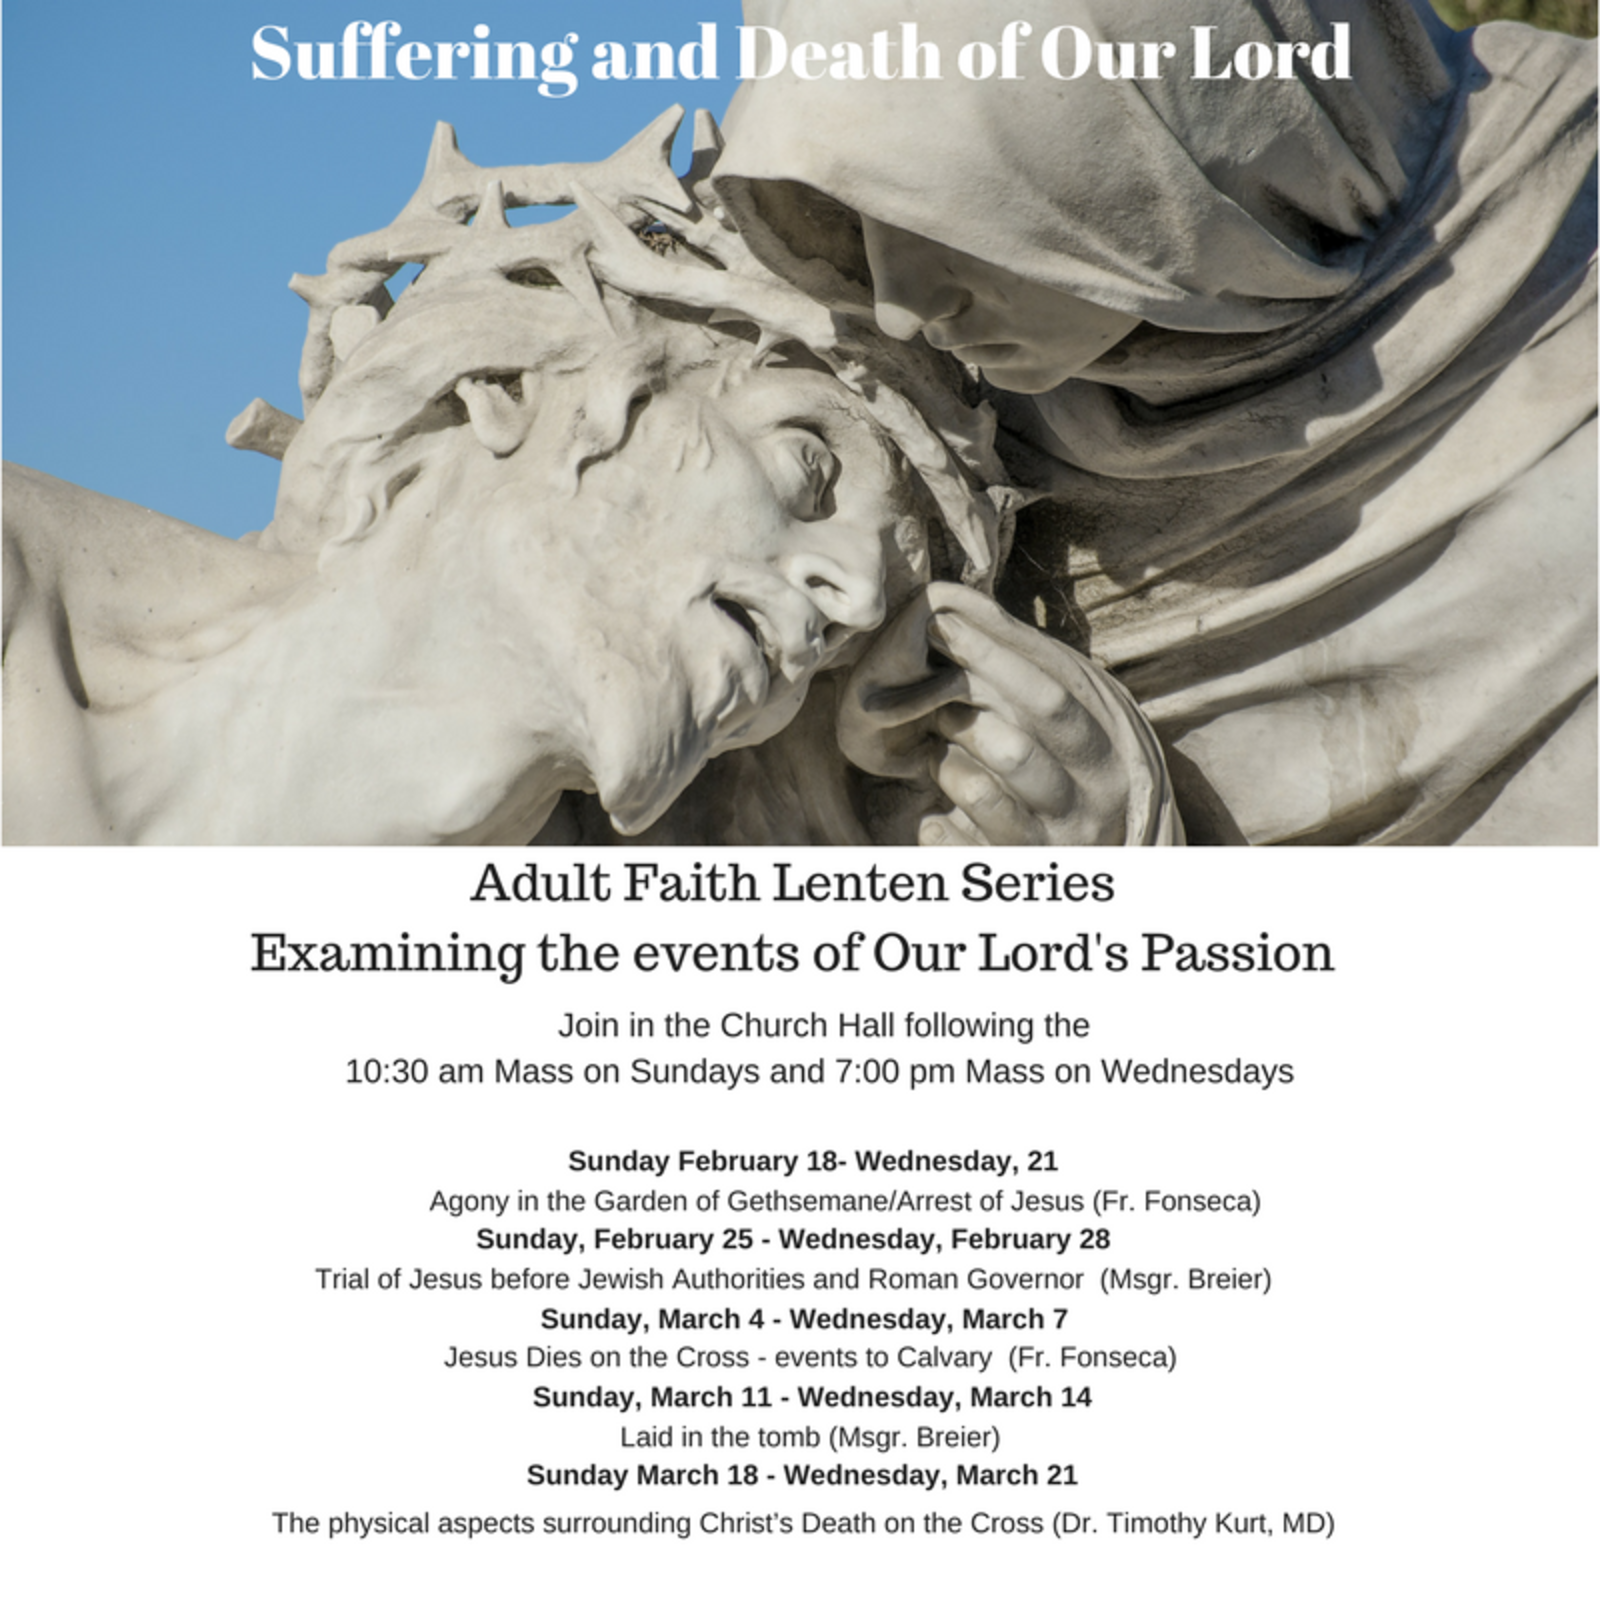 Lenten Series Suffering And Death Of Our Lord